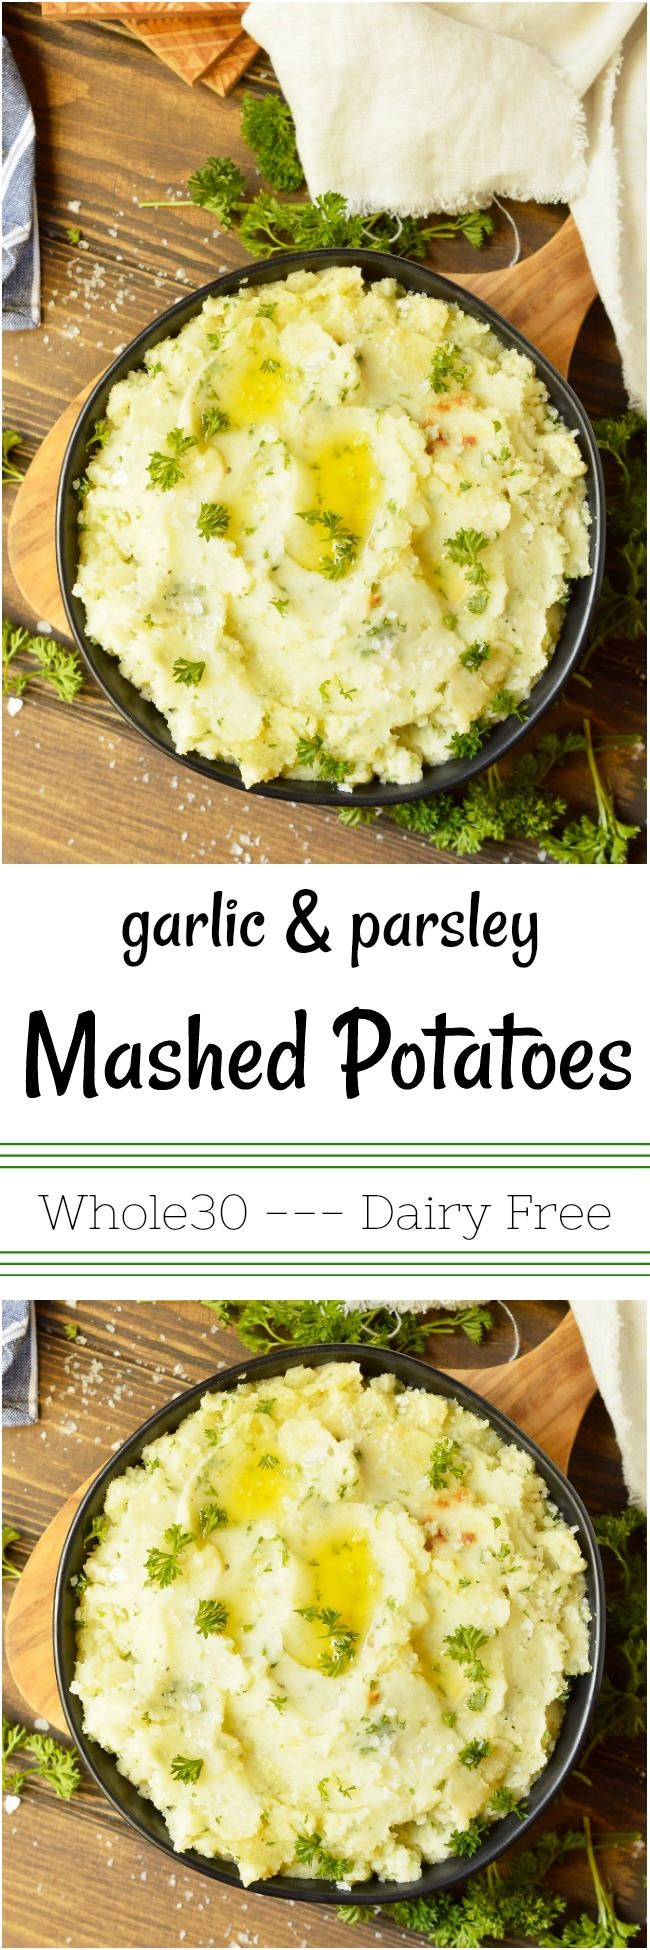 TheseDairy Free Garlic Mashed Potatoes don't need no stinkin' milk and butter to be great! Roasted garlic and parsley make these Whole30 Mashed Potatoes extra yummy! Use vegetable stock for Vegan Mashed Potatoes. A great side dish if you are on a special diet or not. #whole30recipe #dairyfreerecipes #mashedpotatoes #sidedish